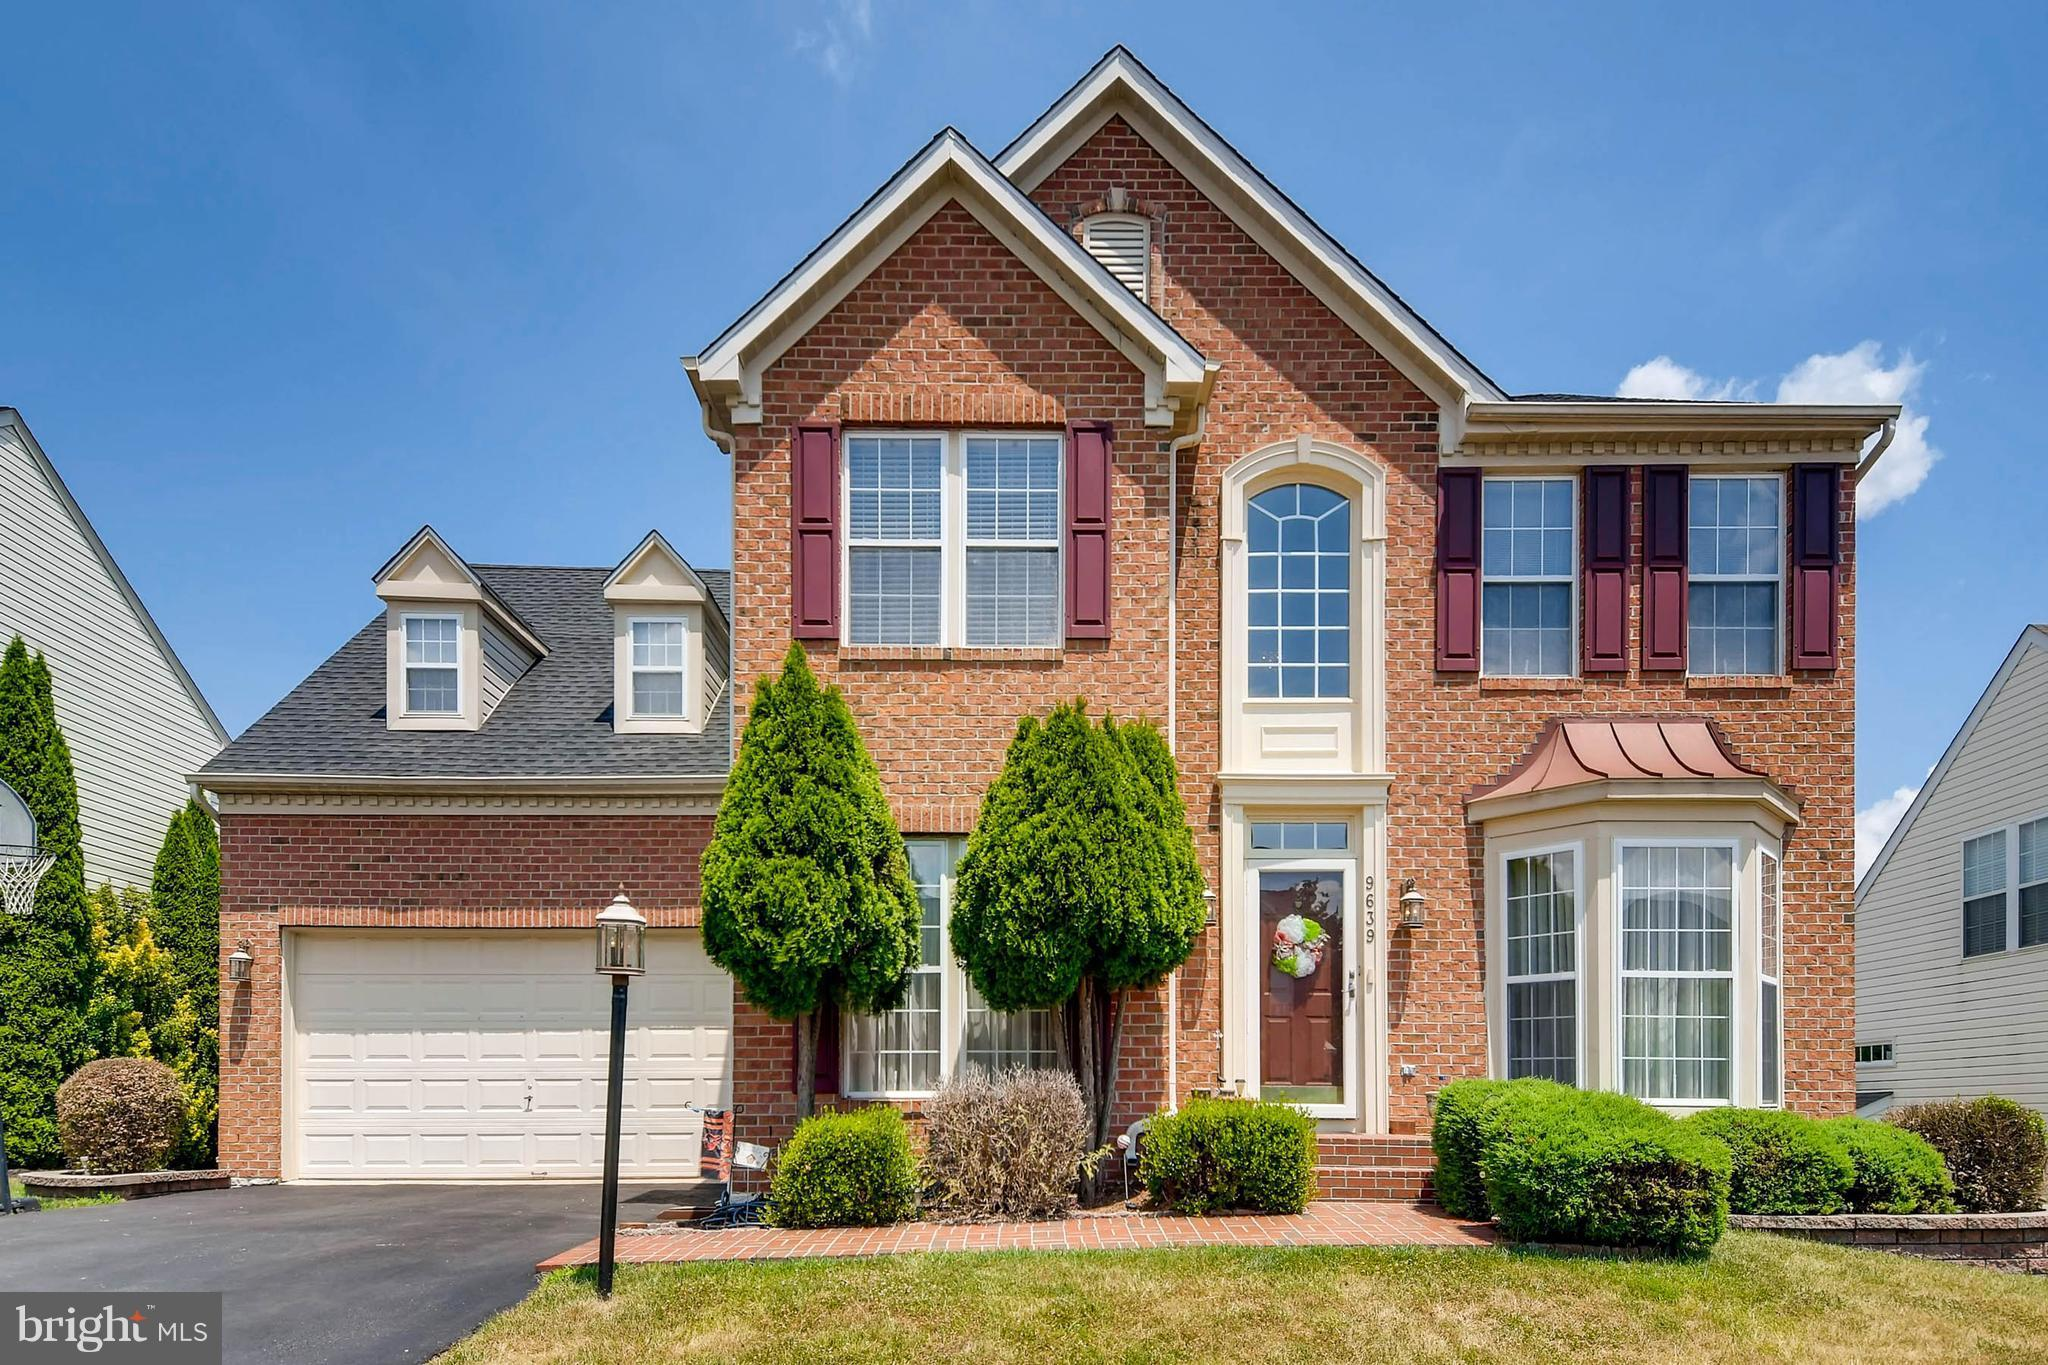 9639 GERST ROAD, PERRY HALL, MD 21128